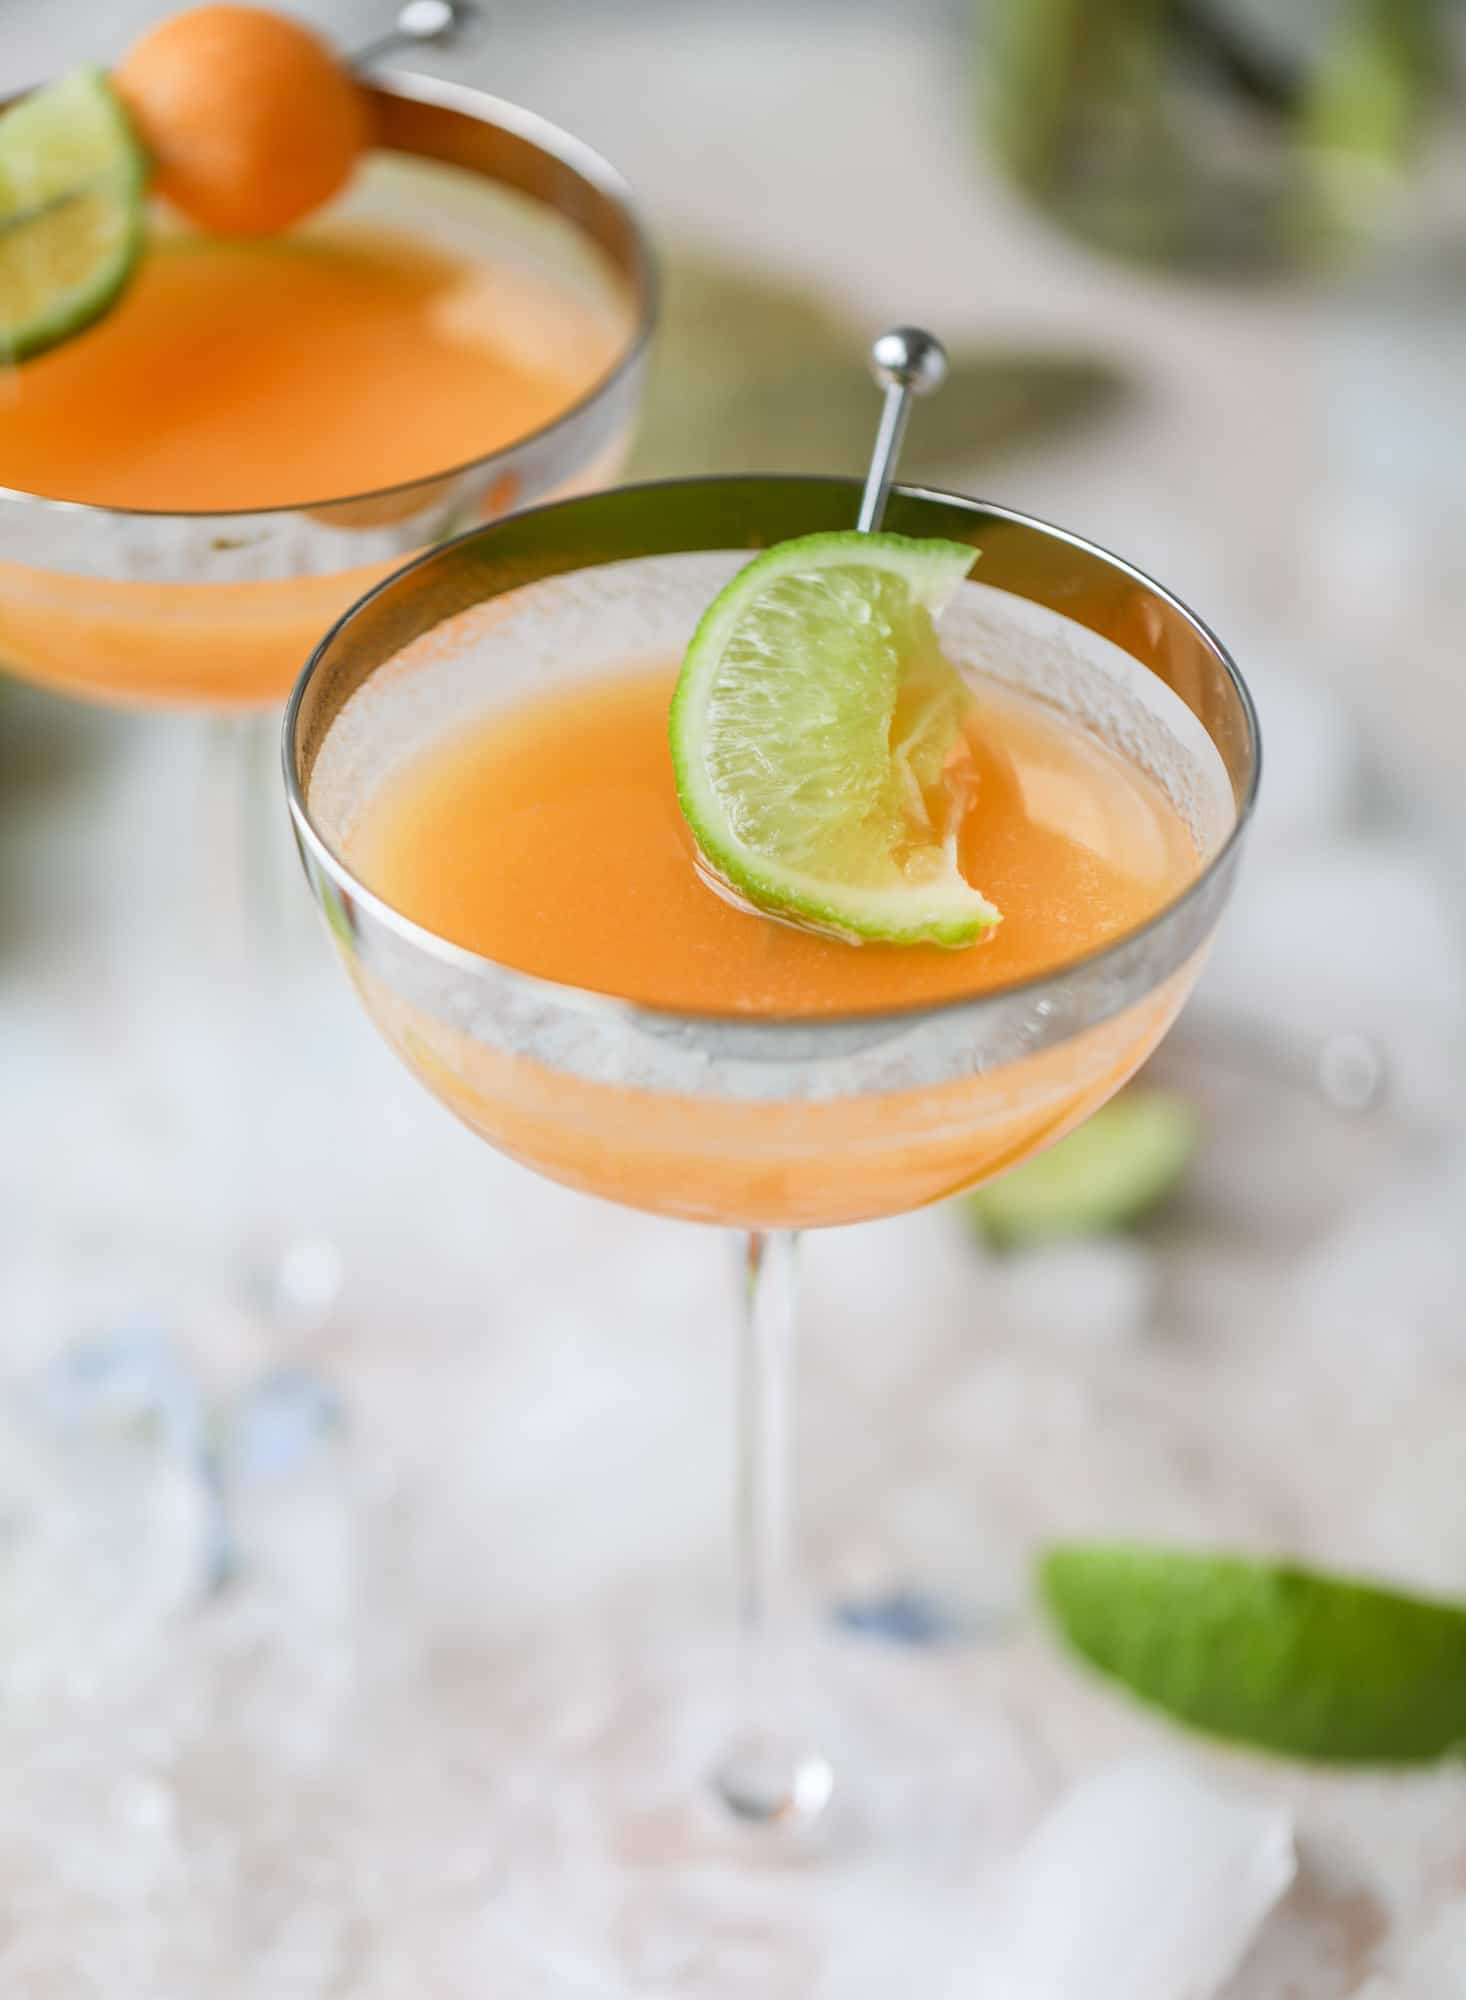 This cantaloupe daiquiri is the perfect way to celebrate summer! Freshly juiced melon, lime juice, rum and maraschino cherries - it's refreshing and cool and a fantastic cocktail to have during happy hour! Isn't the color amazing too?! I howsweeteats.com #cantaloupe #cocktail #daiquiri #lime #rum #summer